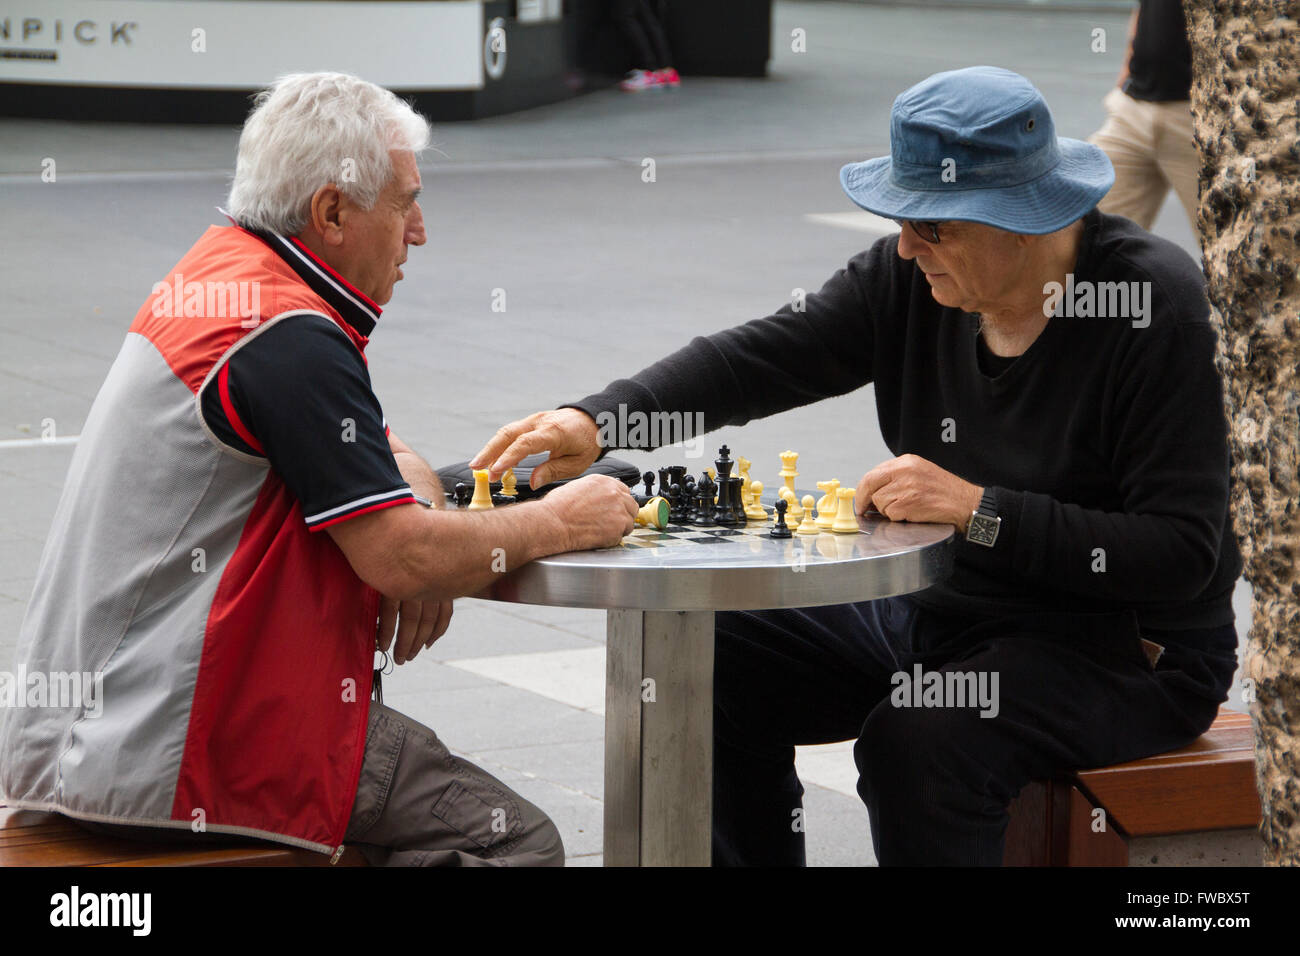 Candid photography of street chess game at surfers paradise - Stock Image